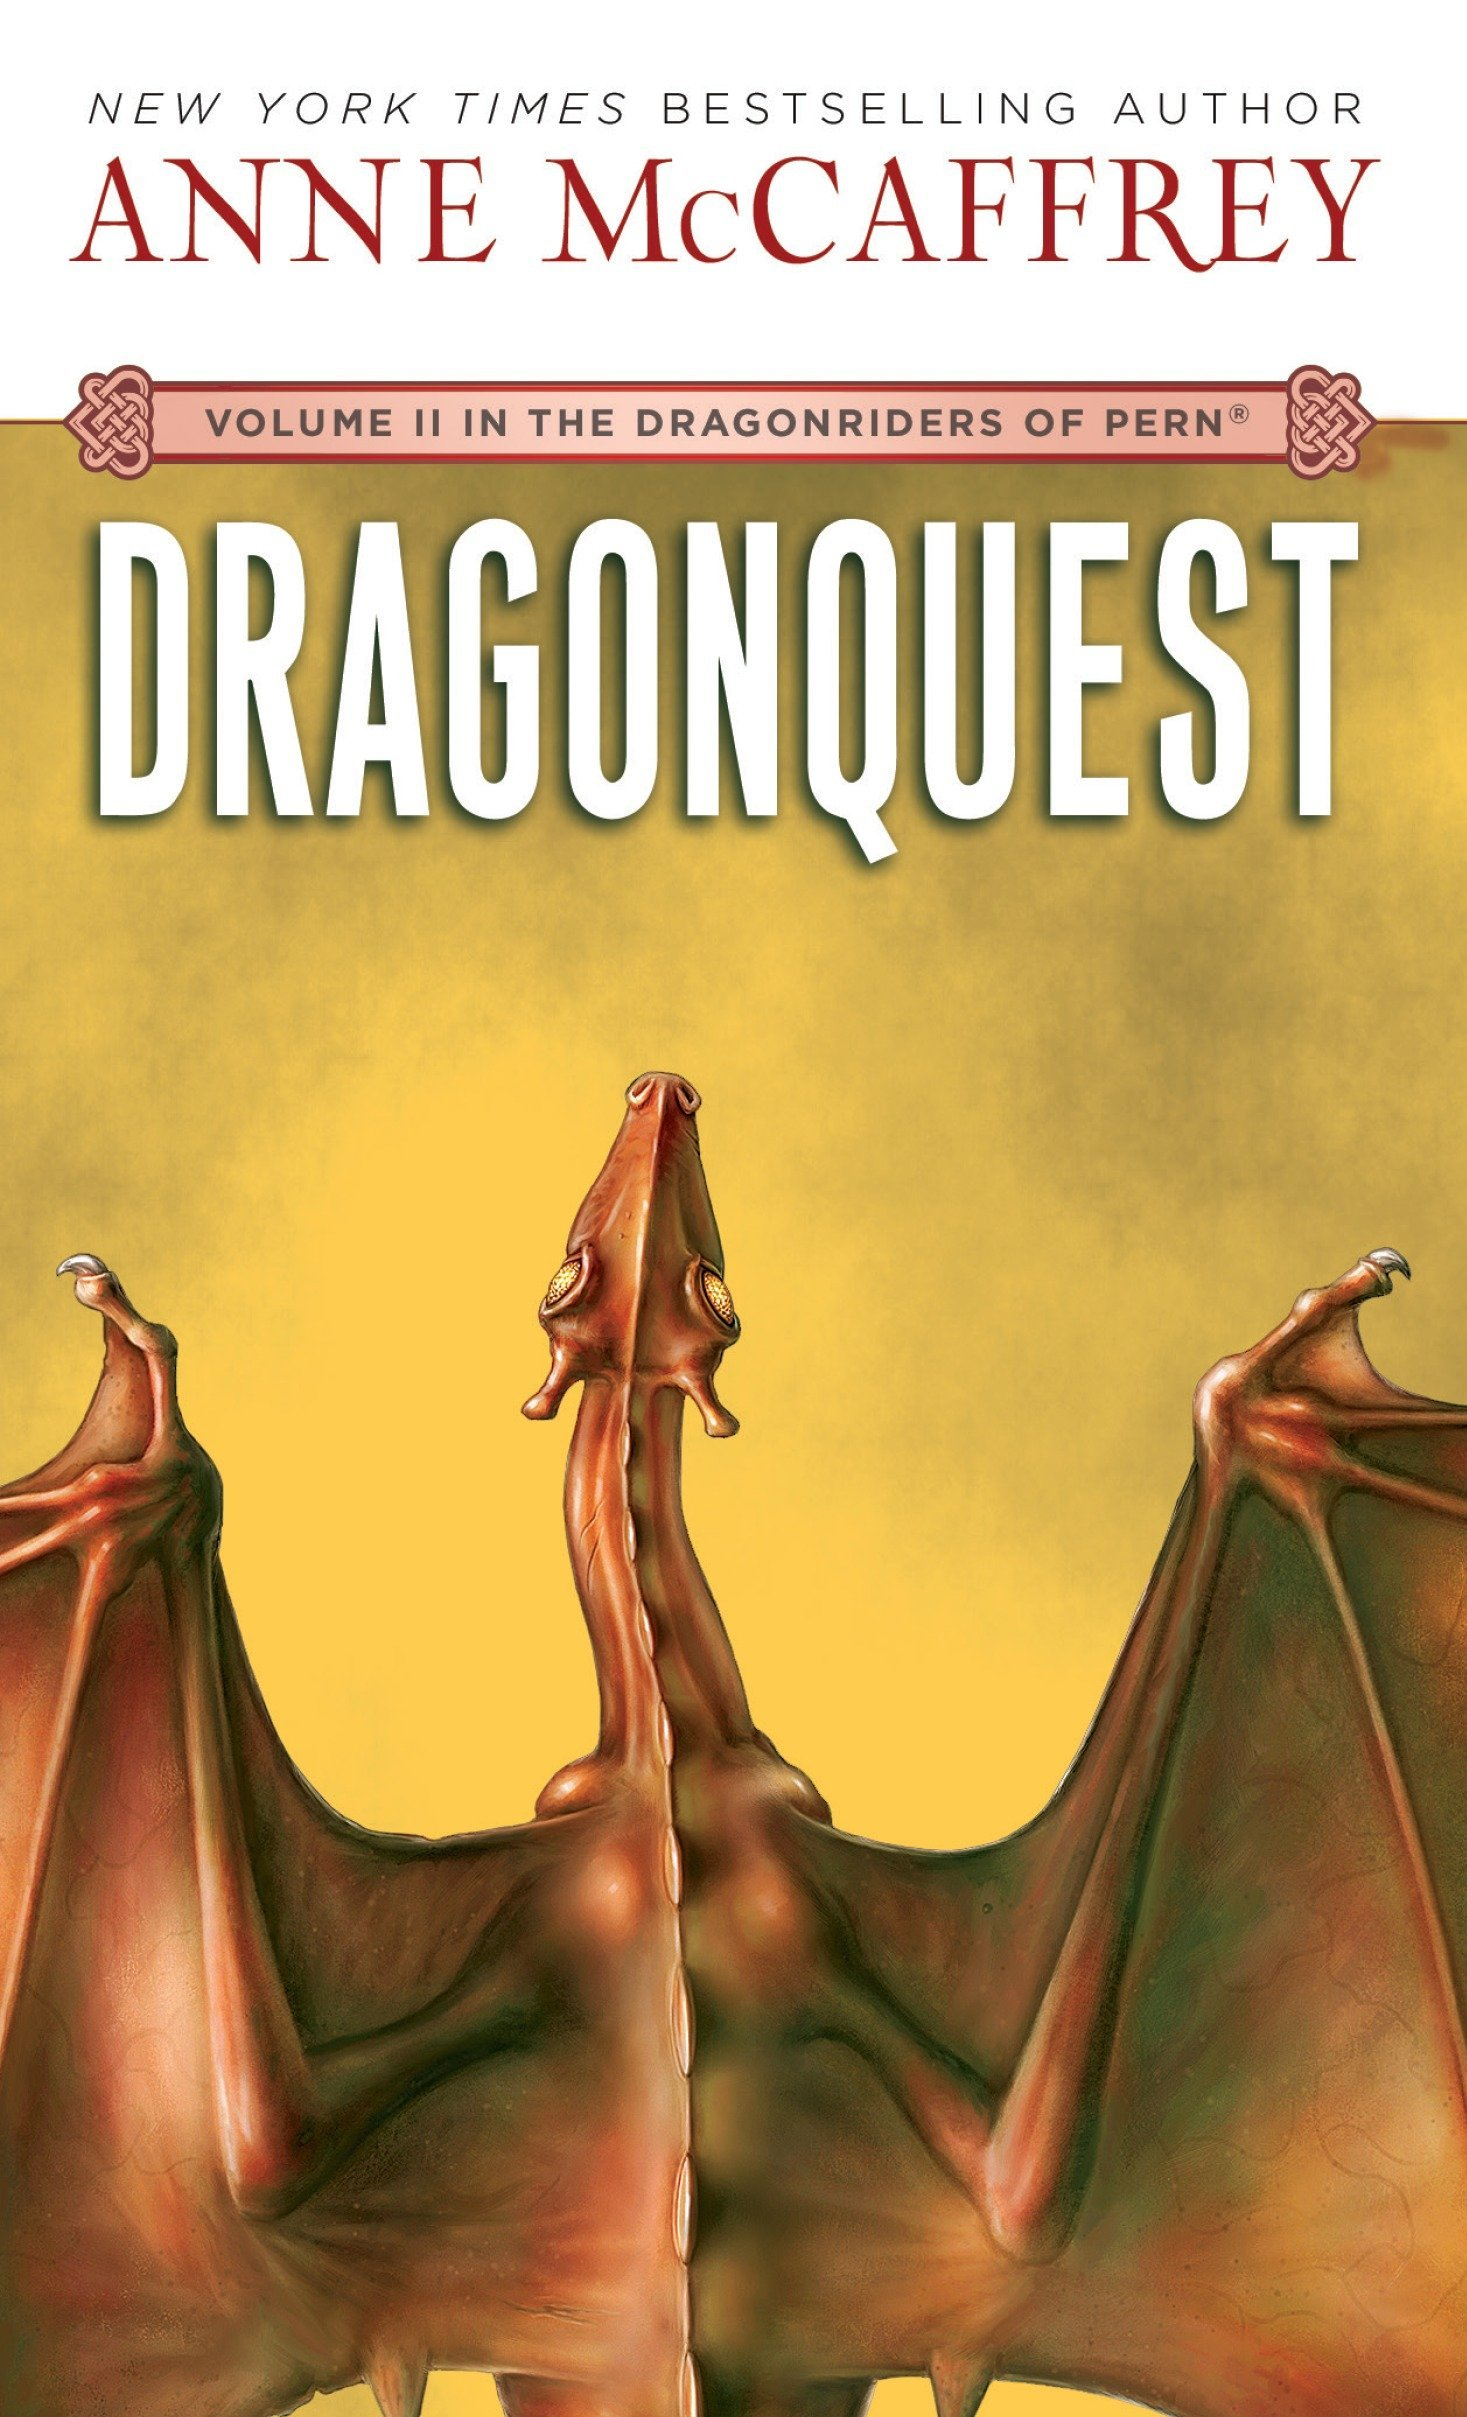 Image result for dragonquest by anne mccaffrey